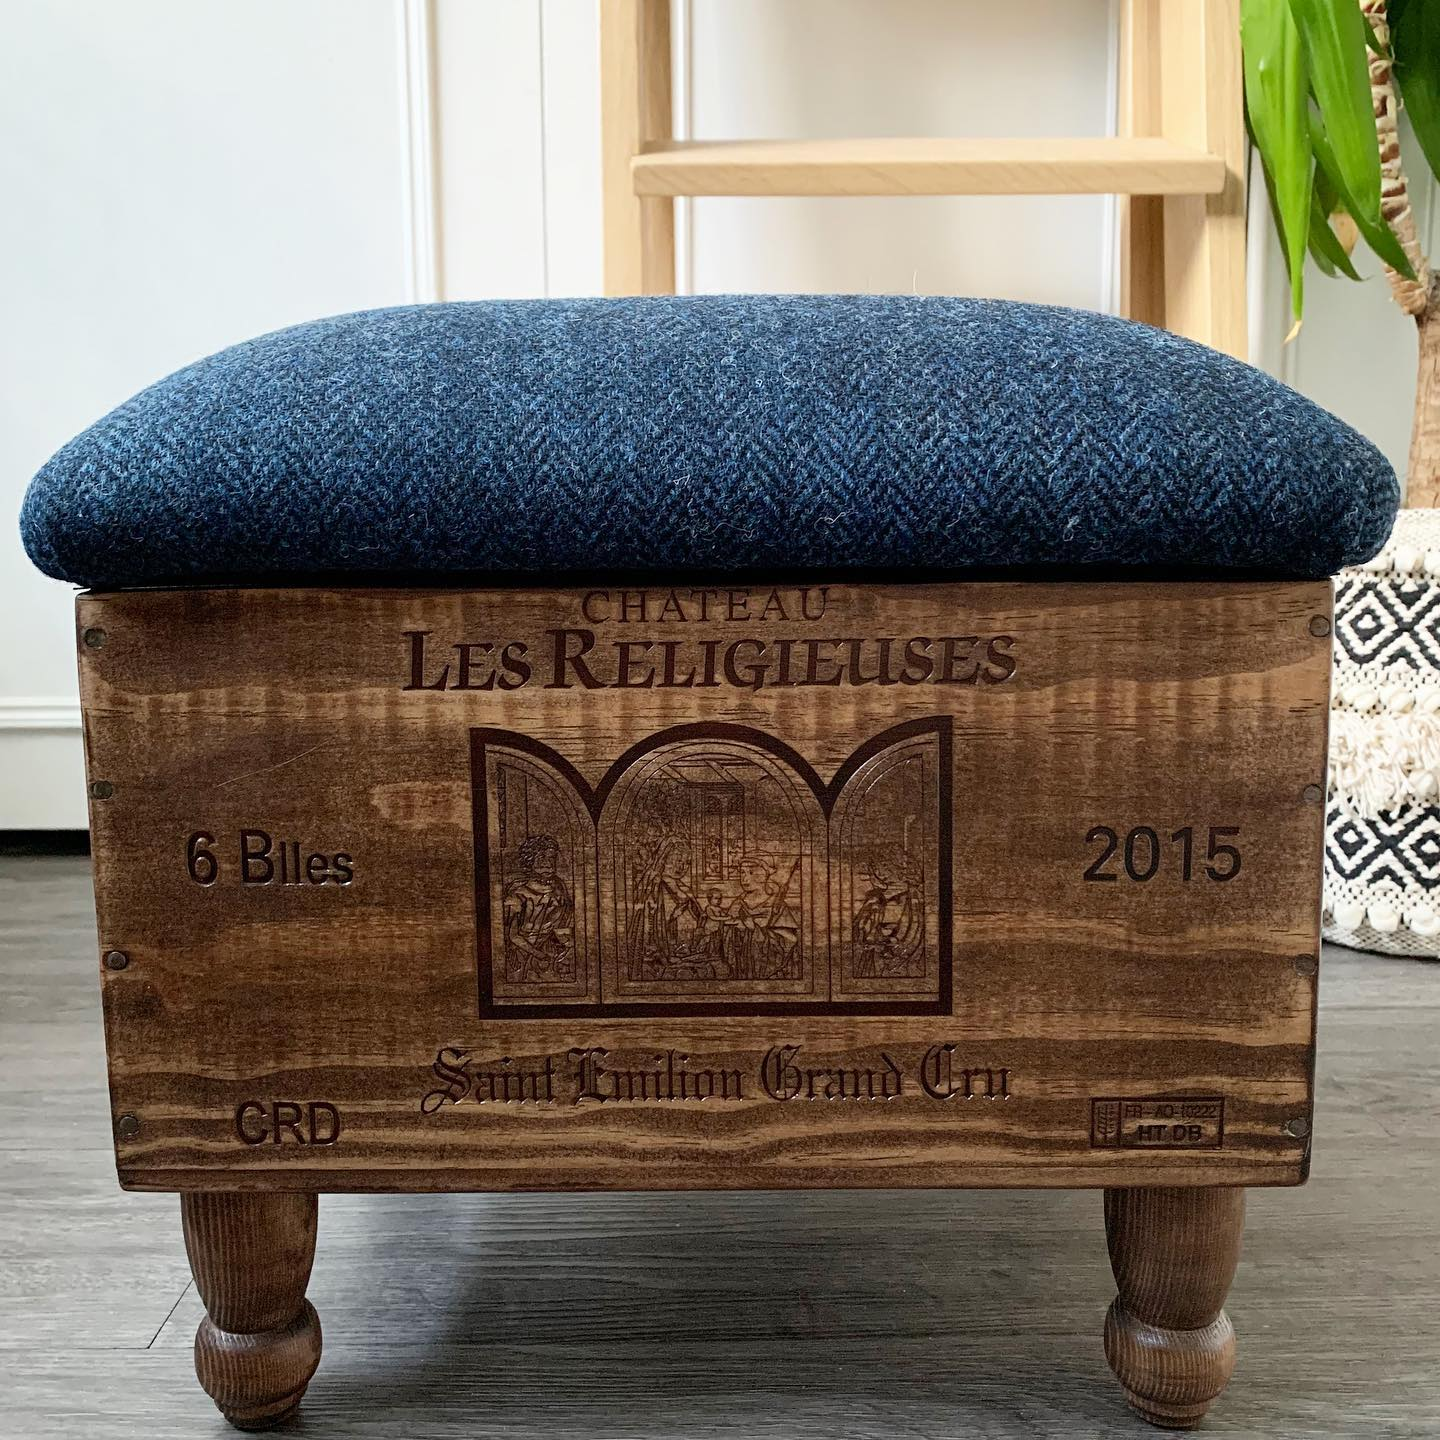 This mini ottoman is for sale today from our #makersmarketfromhome stall. It's £69 plus £12.99 UK shipping. Created from a reclaimed 6 bottle wine box and topped with gorgeous Navy Harris Tweed, this is a favourite of ours. #handcrafted #homewares #gingerandtweed #shophandmade #shopindependent #madefromwood #ottoman #recyle #bespoke #unique